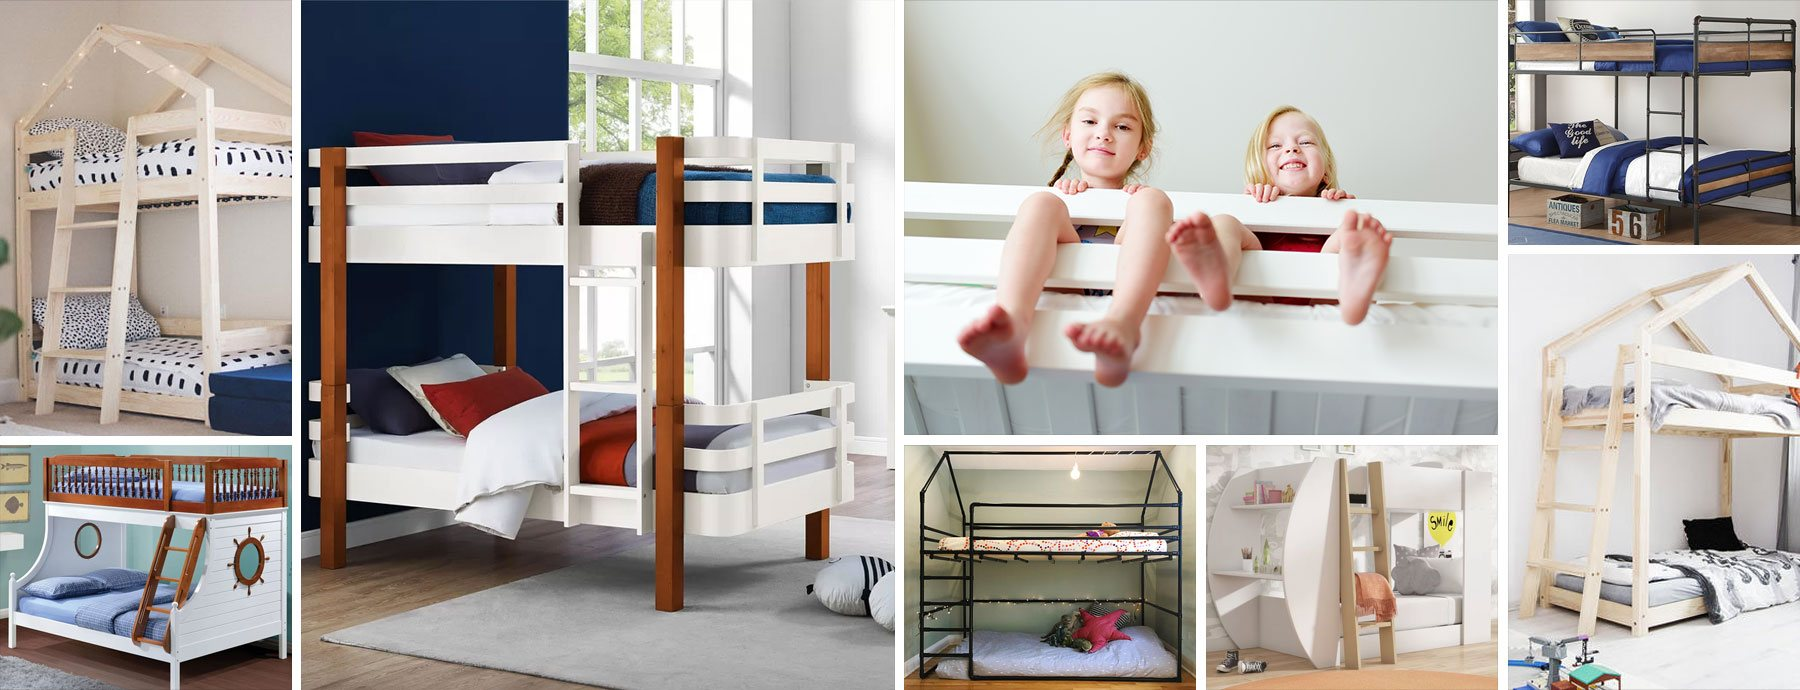 20 Best Bunk Beds To Buy Online Buying Guide 2019